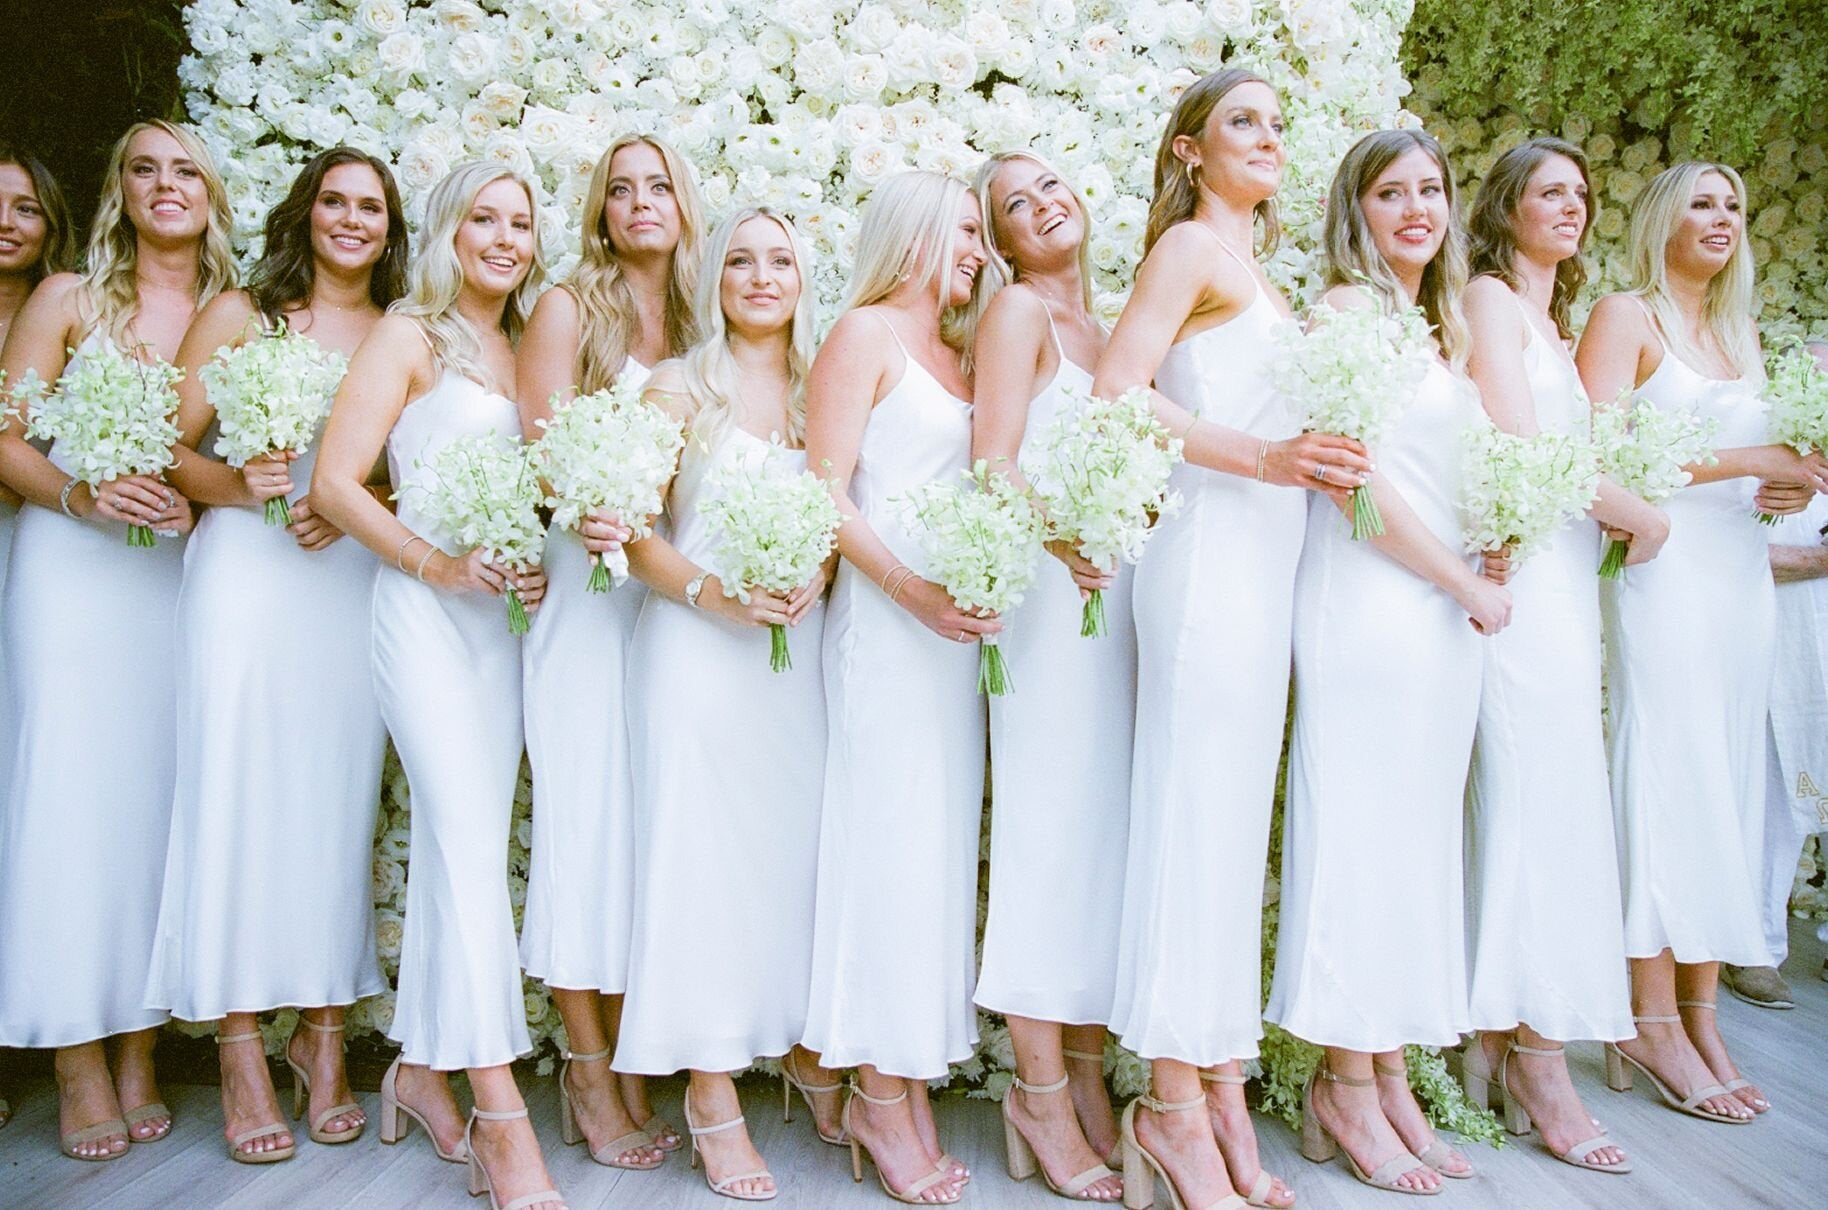 Stone cold fox bridesmaids dresses